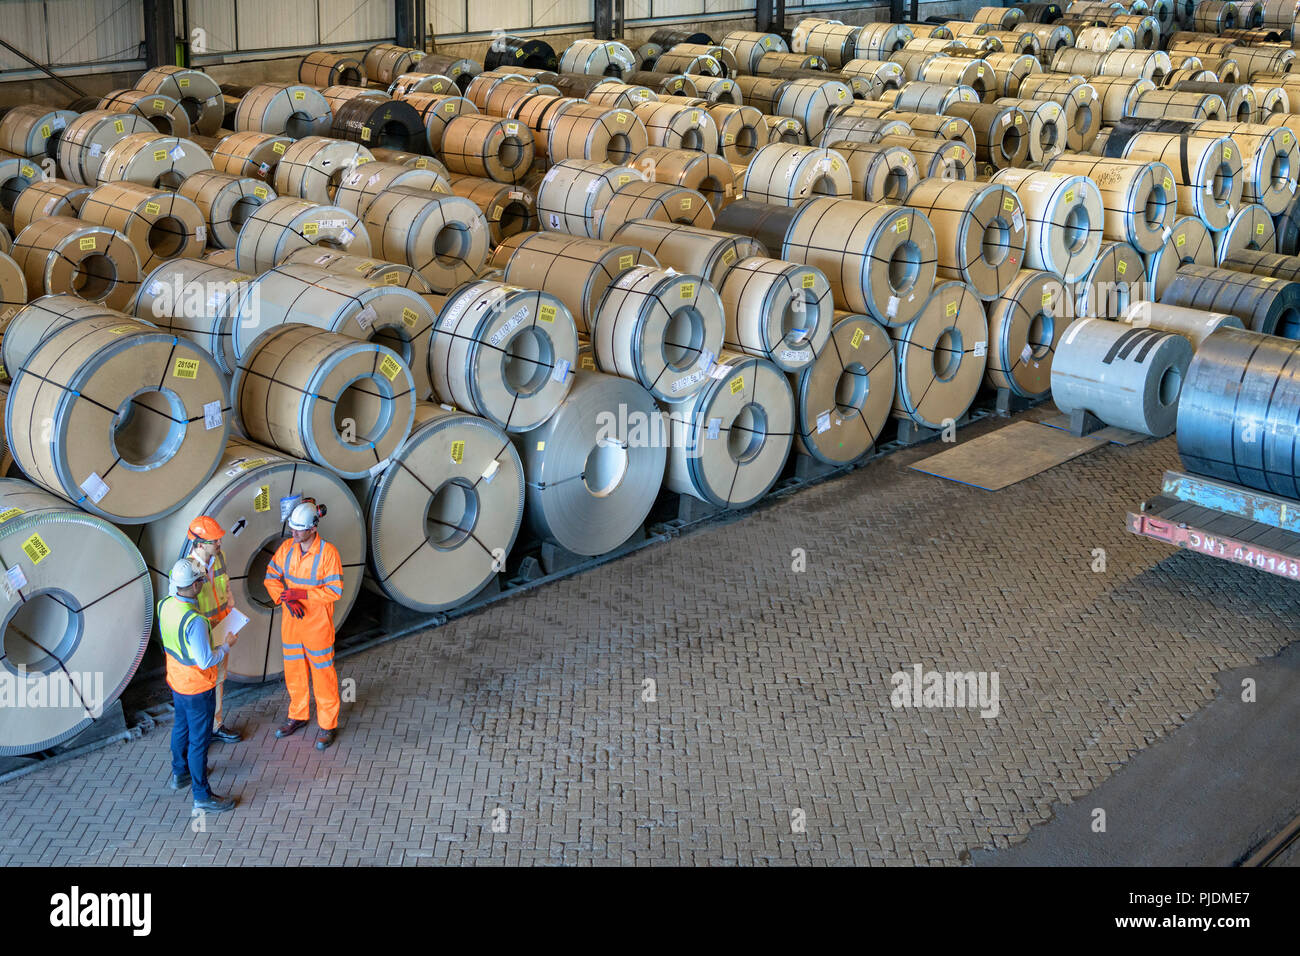 Workers with rows of sheet steel in storage at port - Stock Image